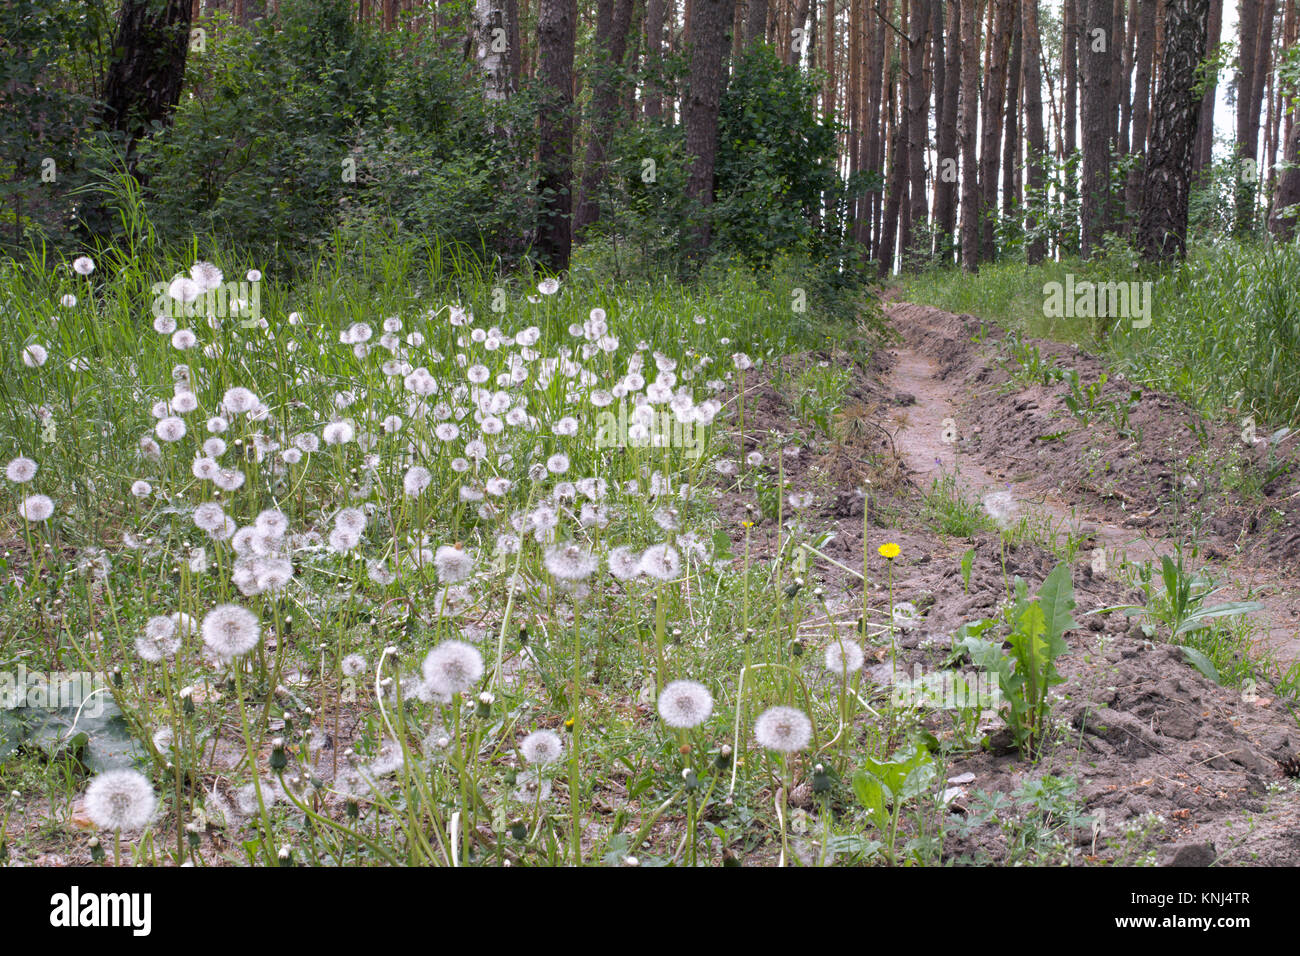 Mature white dandelions on the edge of the forest trench for preventing spread of fire - Stock Image